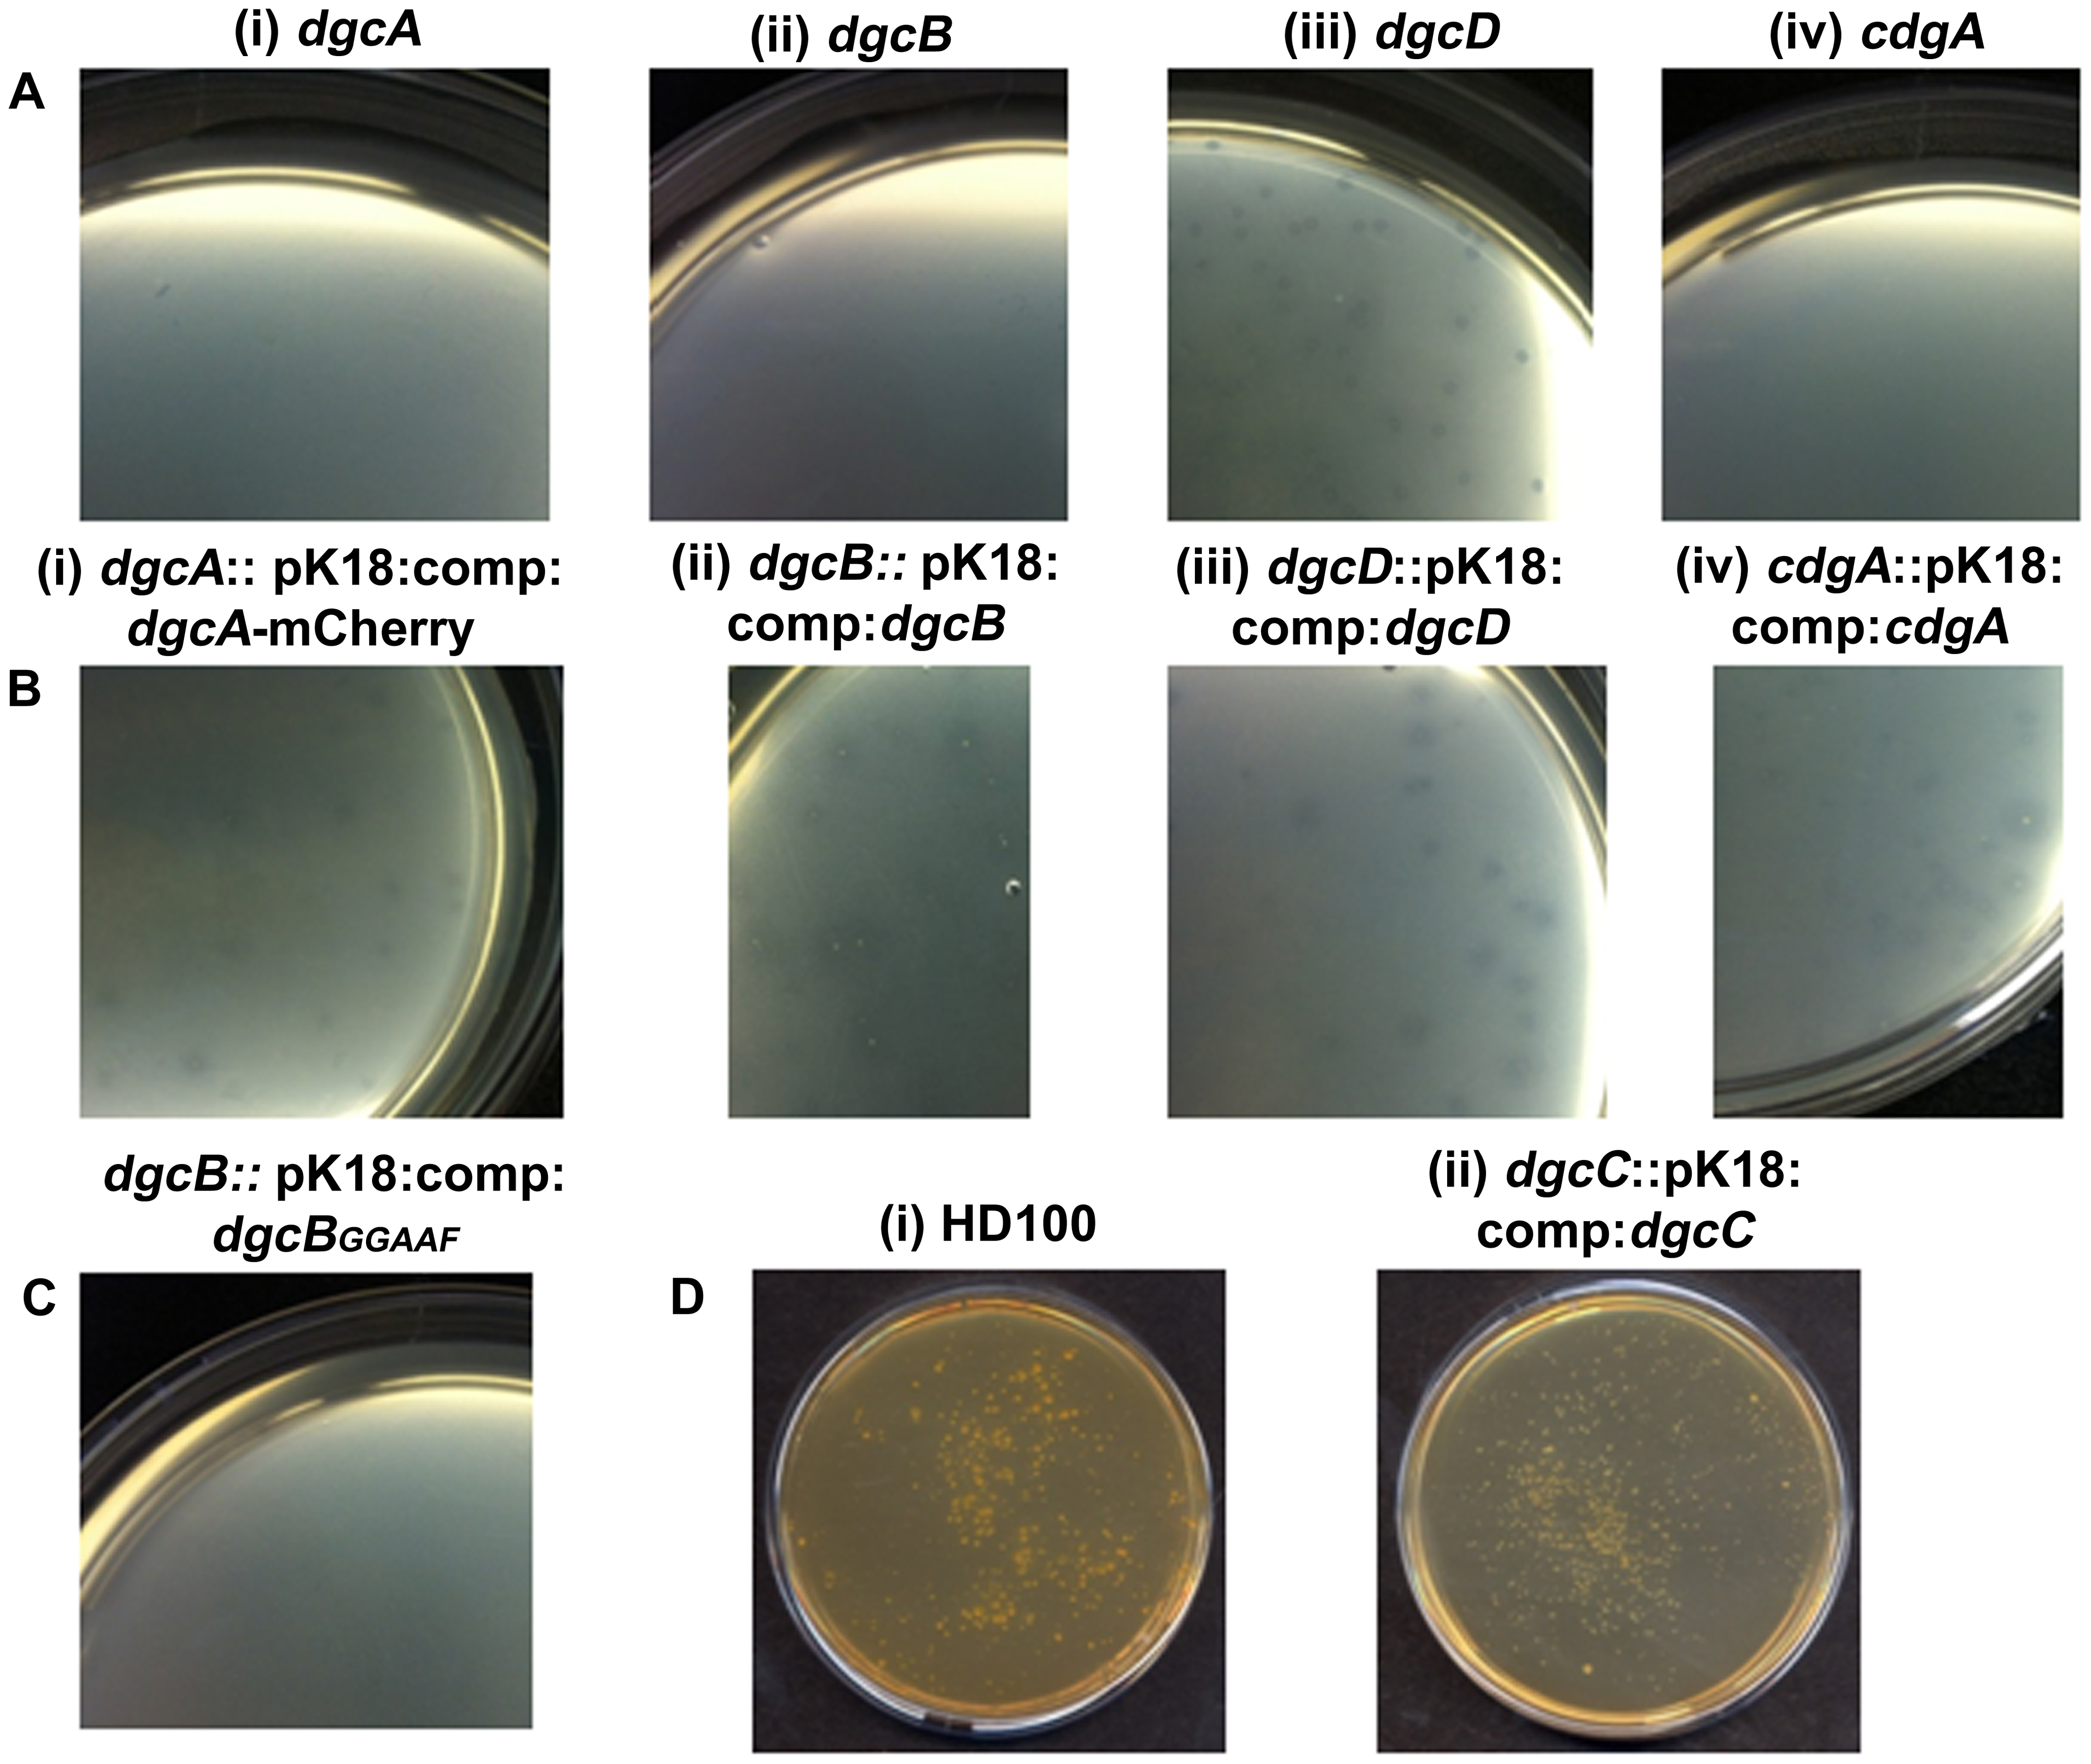 Predatory and axenic growth on agar plates.